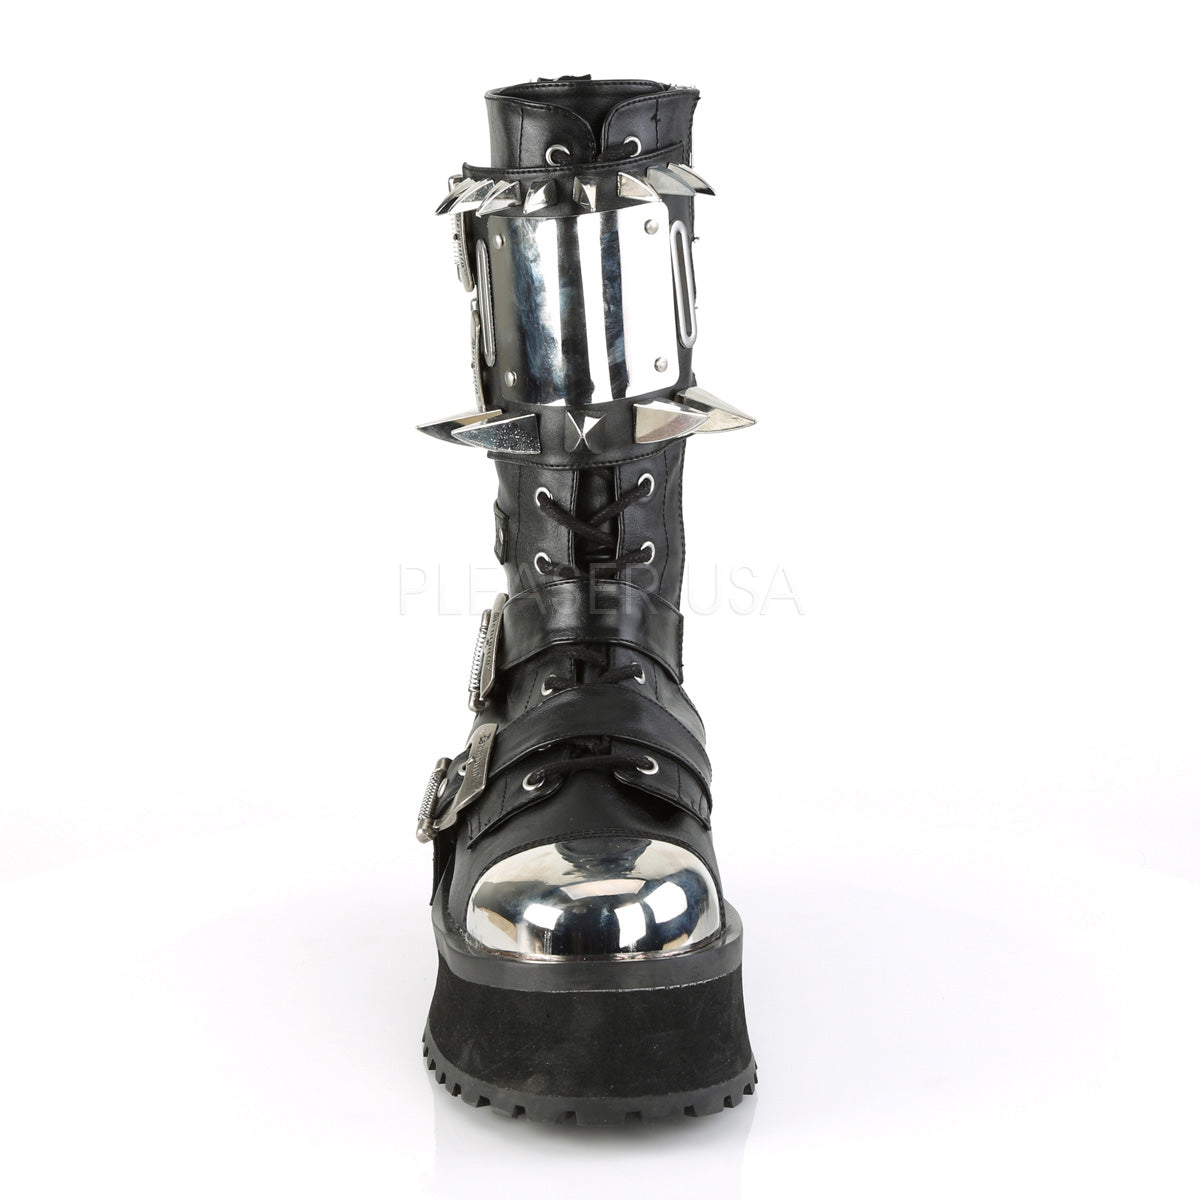 Unisex Demonia GRAVEDIGGER-250 Mid-Calf Boot Black Goth Punk Spikes